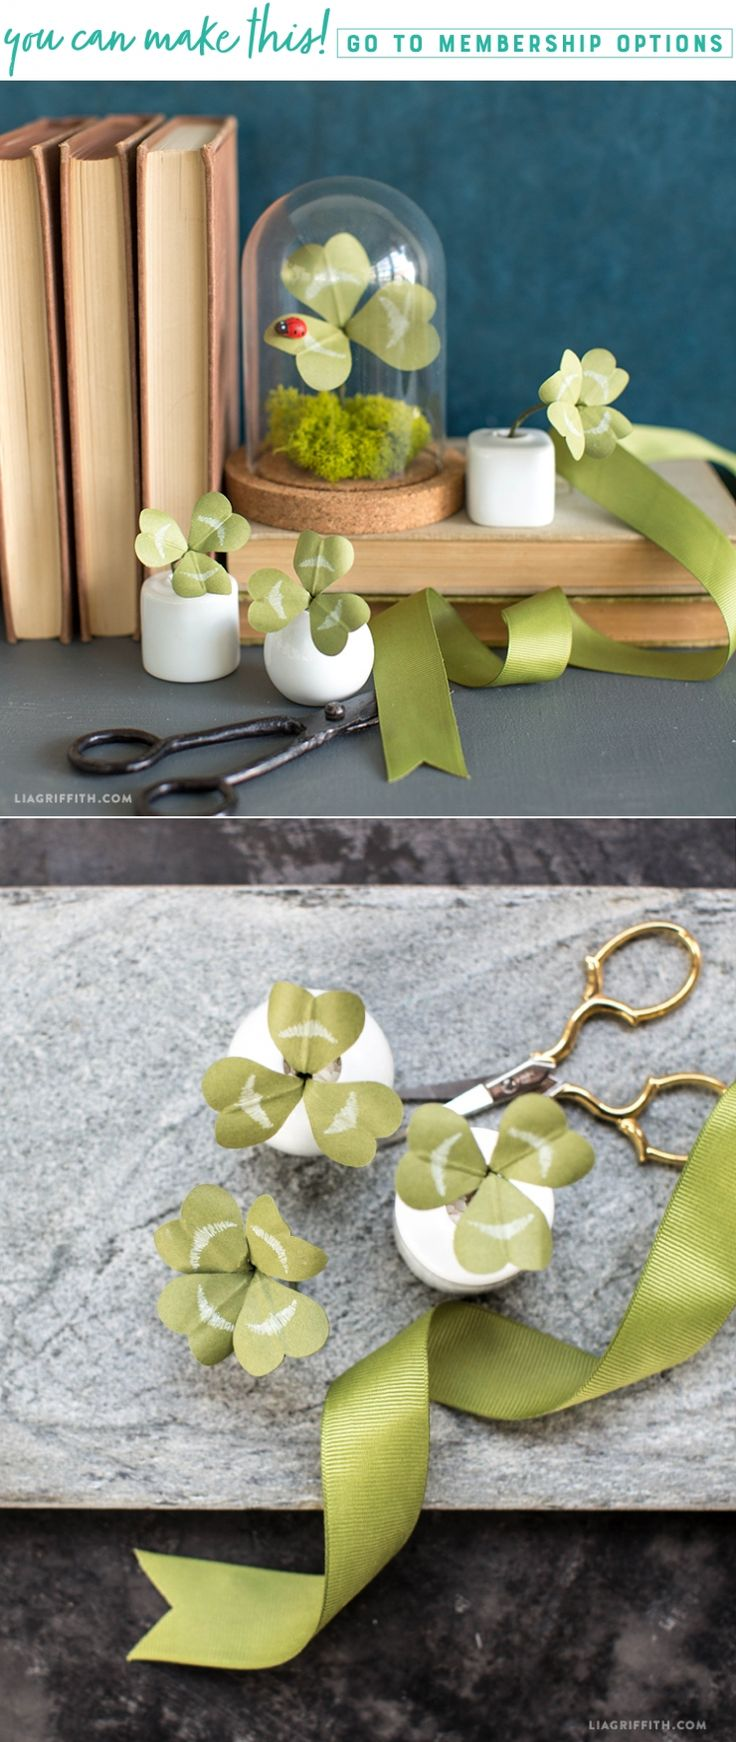 Lucky Clovers  These adorable potted paper clovers are super simple to make. Hide them around the house for a fun game for your little leprechauns; whoever finds the 4 leaf clover wins a prize! https://liagriffith.com/lucky-paper-clover/  * * * #clover #fourleafclover #fourleafclovers #stpatricksday #green #houseplant #houseplants #stpatricksday2018 #diy #diycraft #diycrafts #diyproject #diyprojects #diyhome #diyholiday #diydecor #holiday #diyhomedecor #leprechaun #luck #lucky #goodluck…